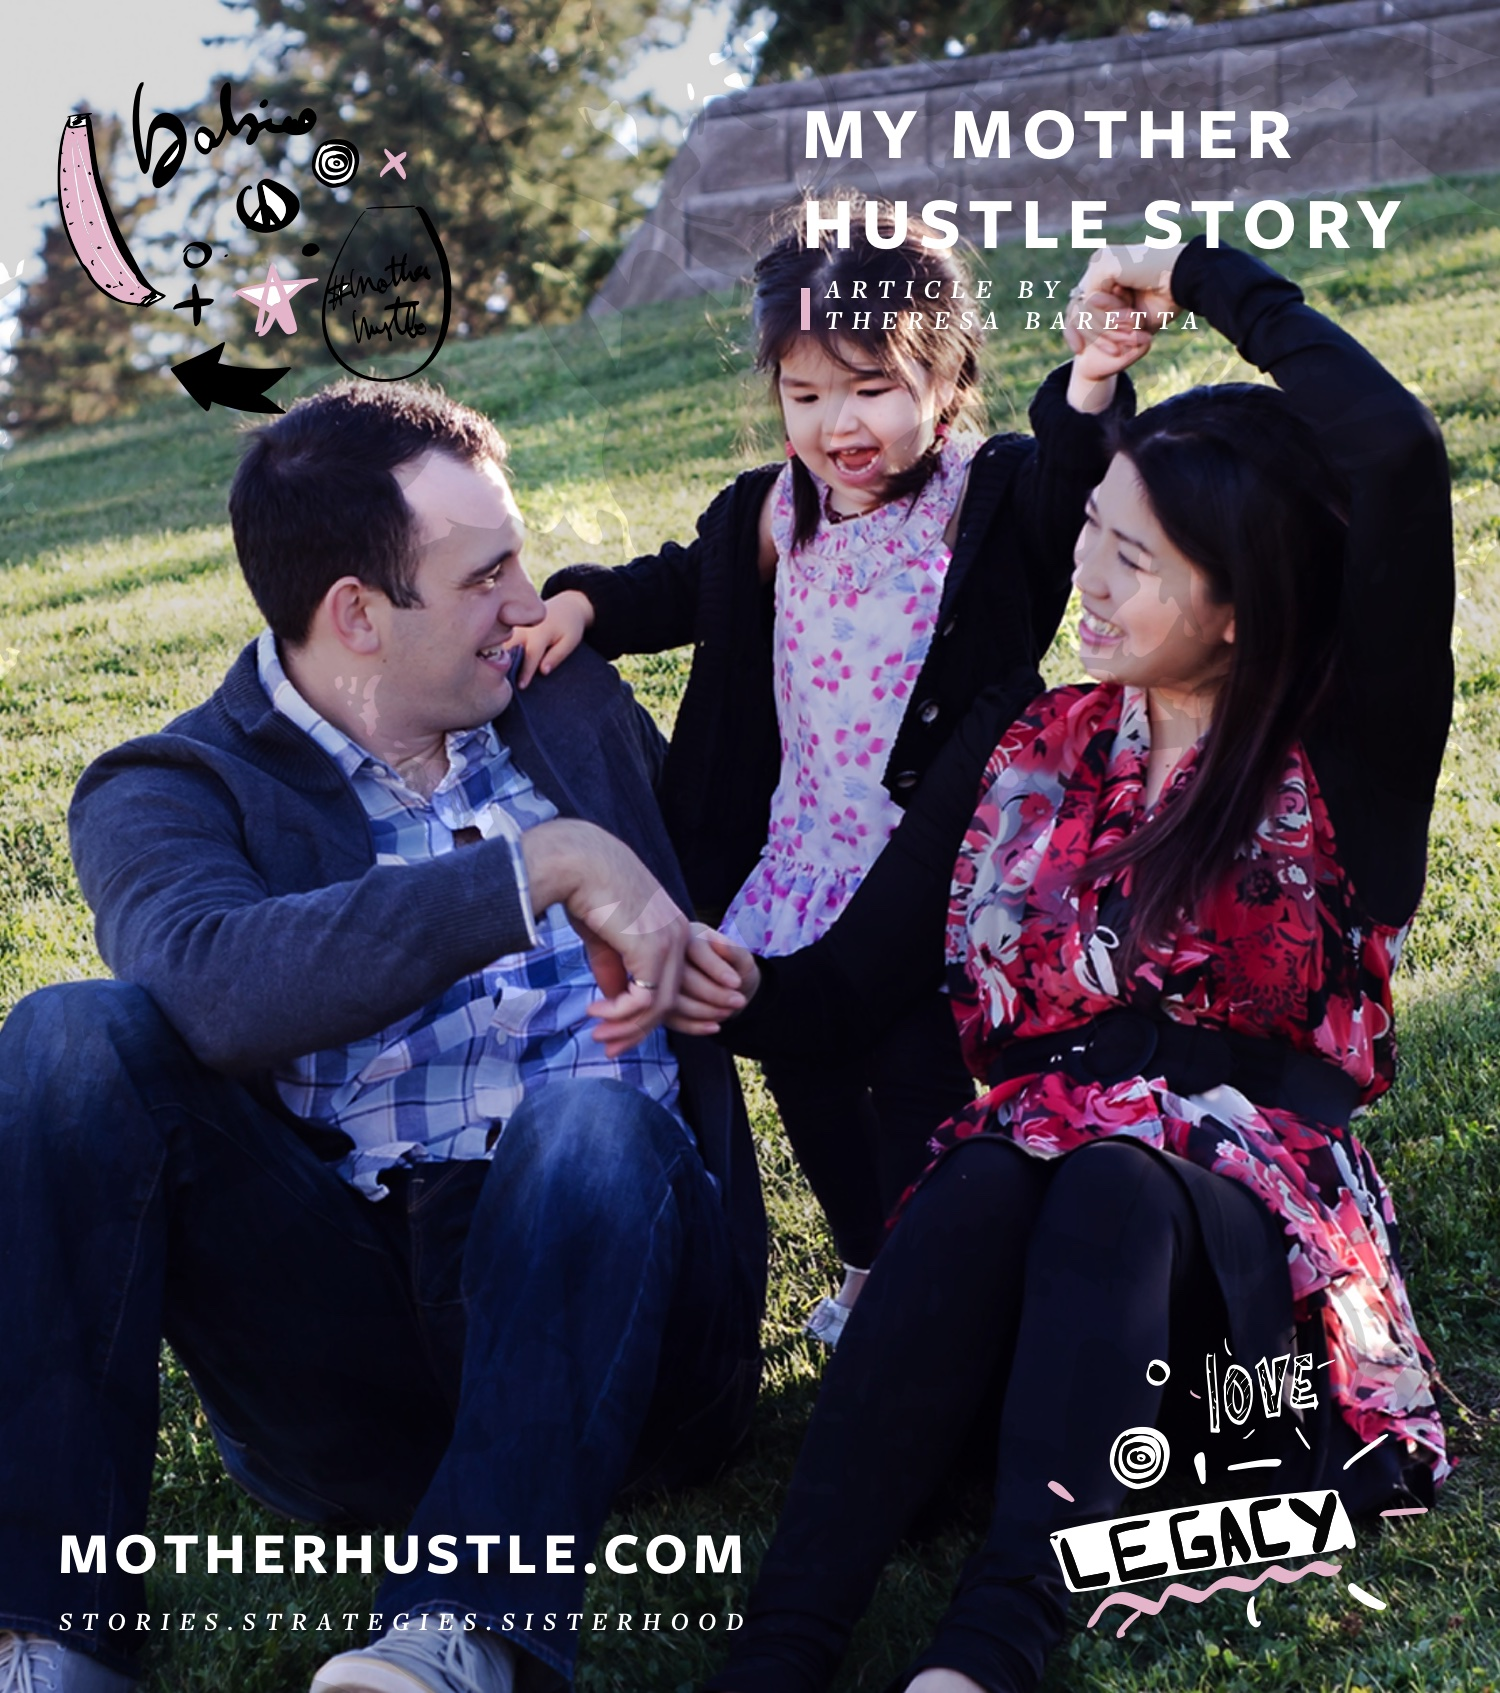 MyMotherHustle Story - Theresa Baretta